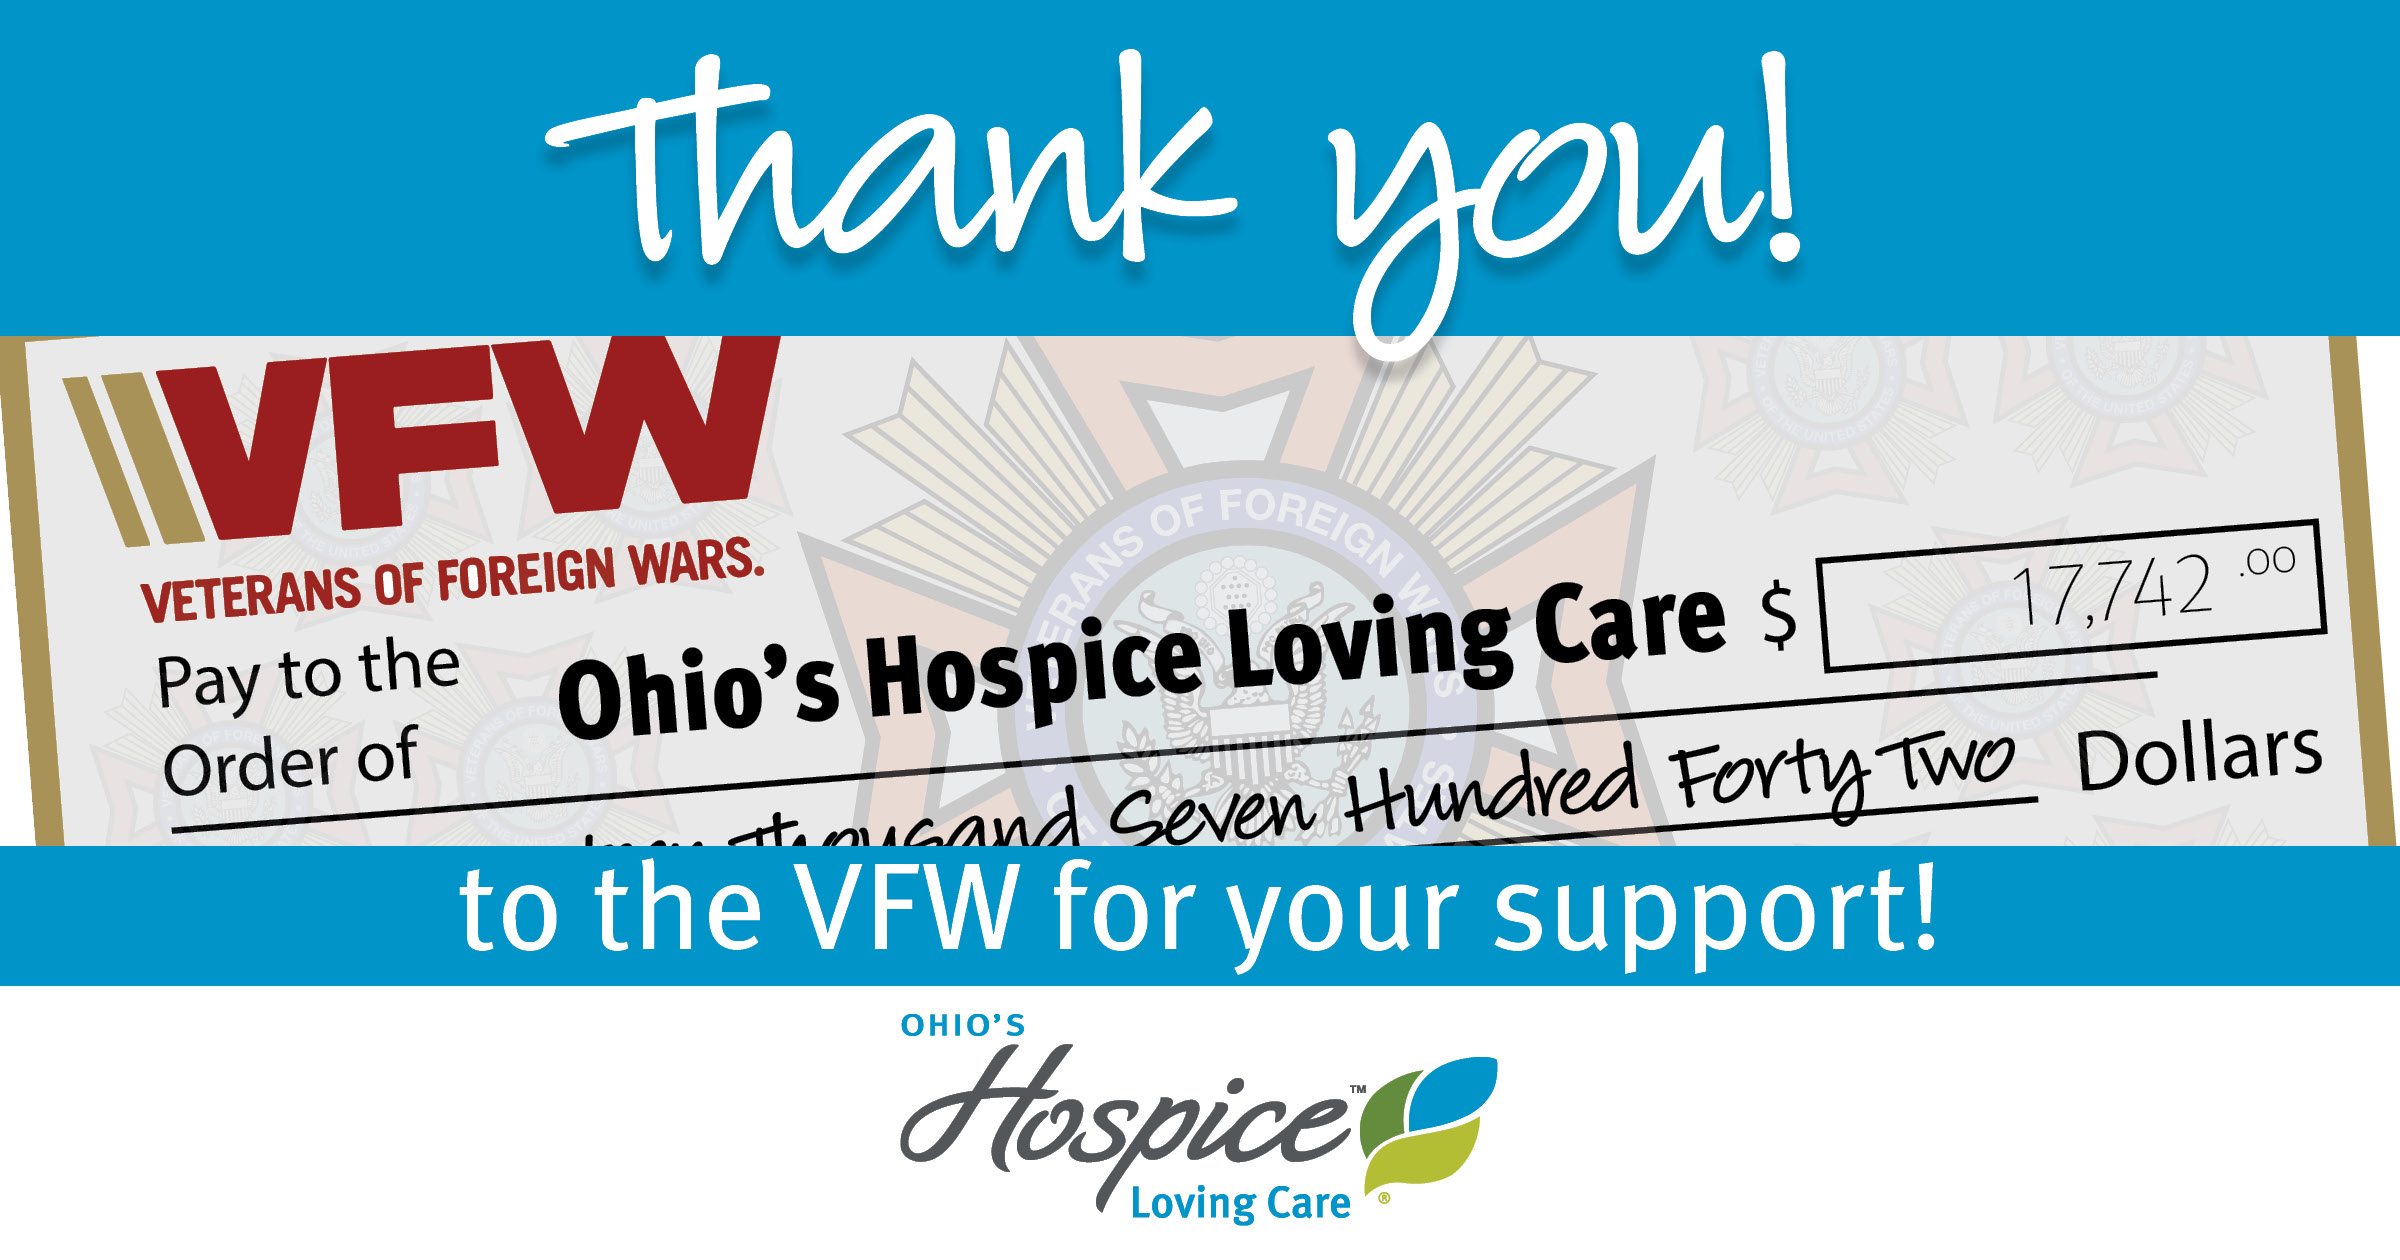 Thank You To The VFW For Your Support!